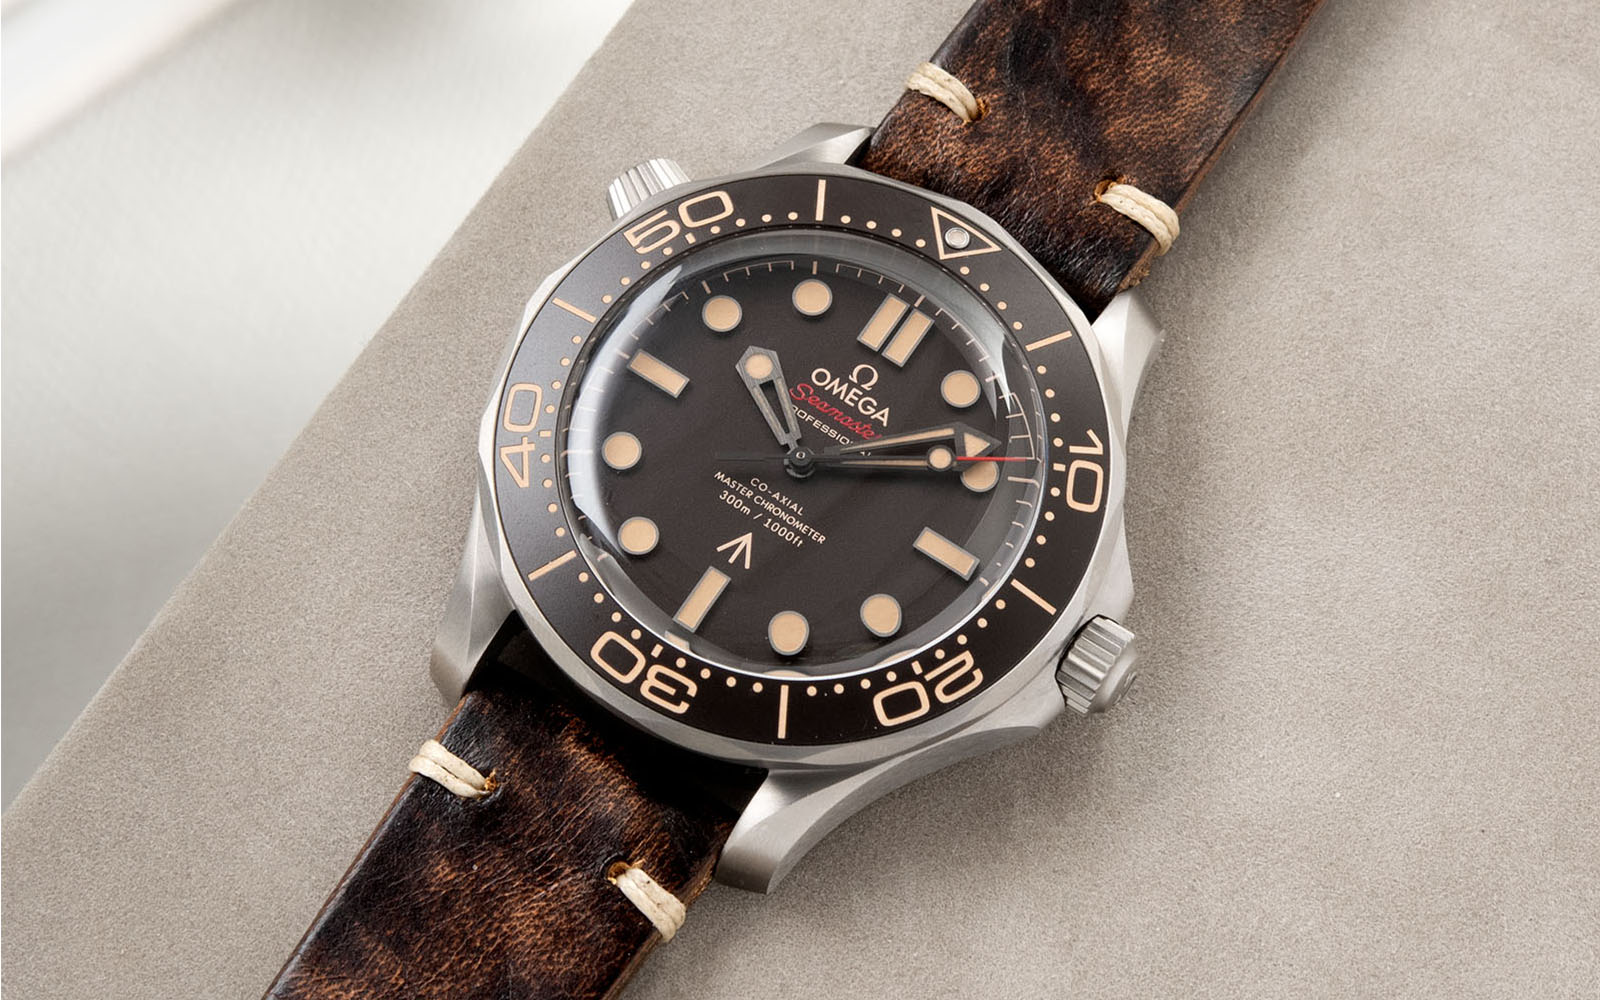 Bulang and Sons_Strapguide_Omega Seamaster_Woodie Brown Leather Watch Strap_Banner